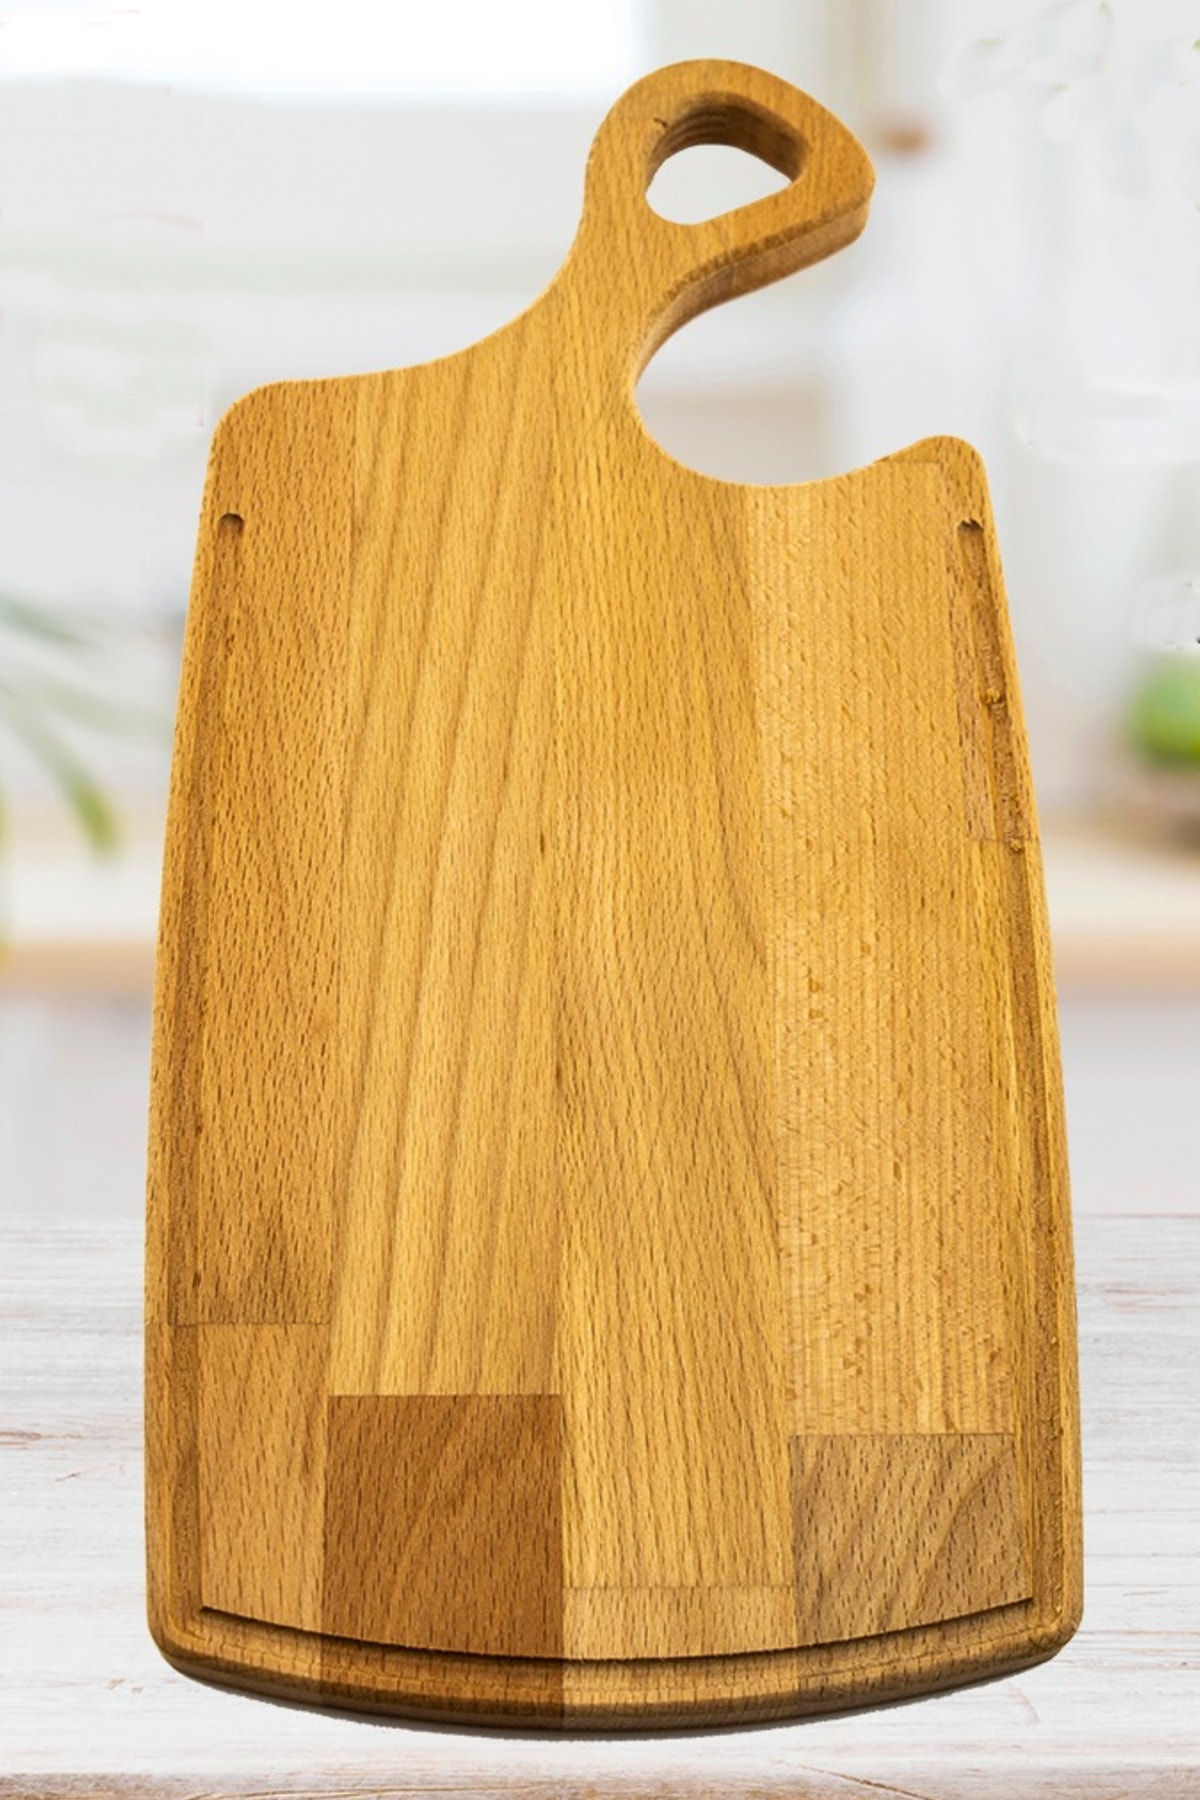 Multi-Use Cutting Board With Curved Handle Kitchen Hotel Elegance Food Salad Meat Free & Fast Shipping